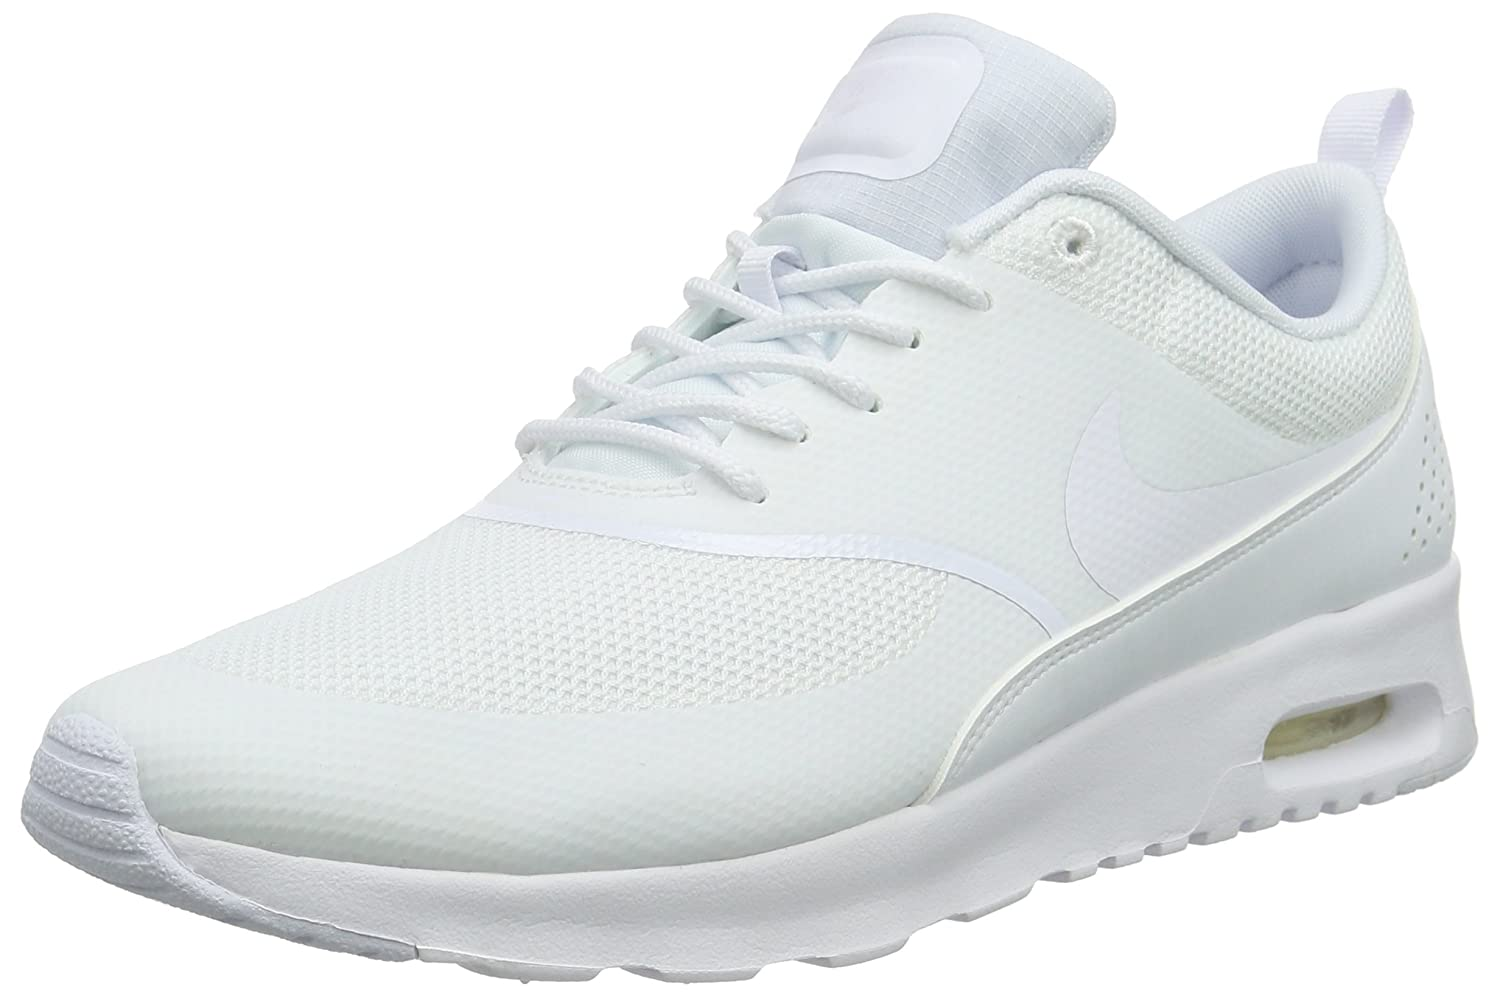 c54fc317 Nike Air Max Thea, Women Low-Top Sneakers, White (White/White), 8.5 UK (43  EU): Amazon.co.uk: Shoes & Bags